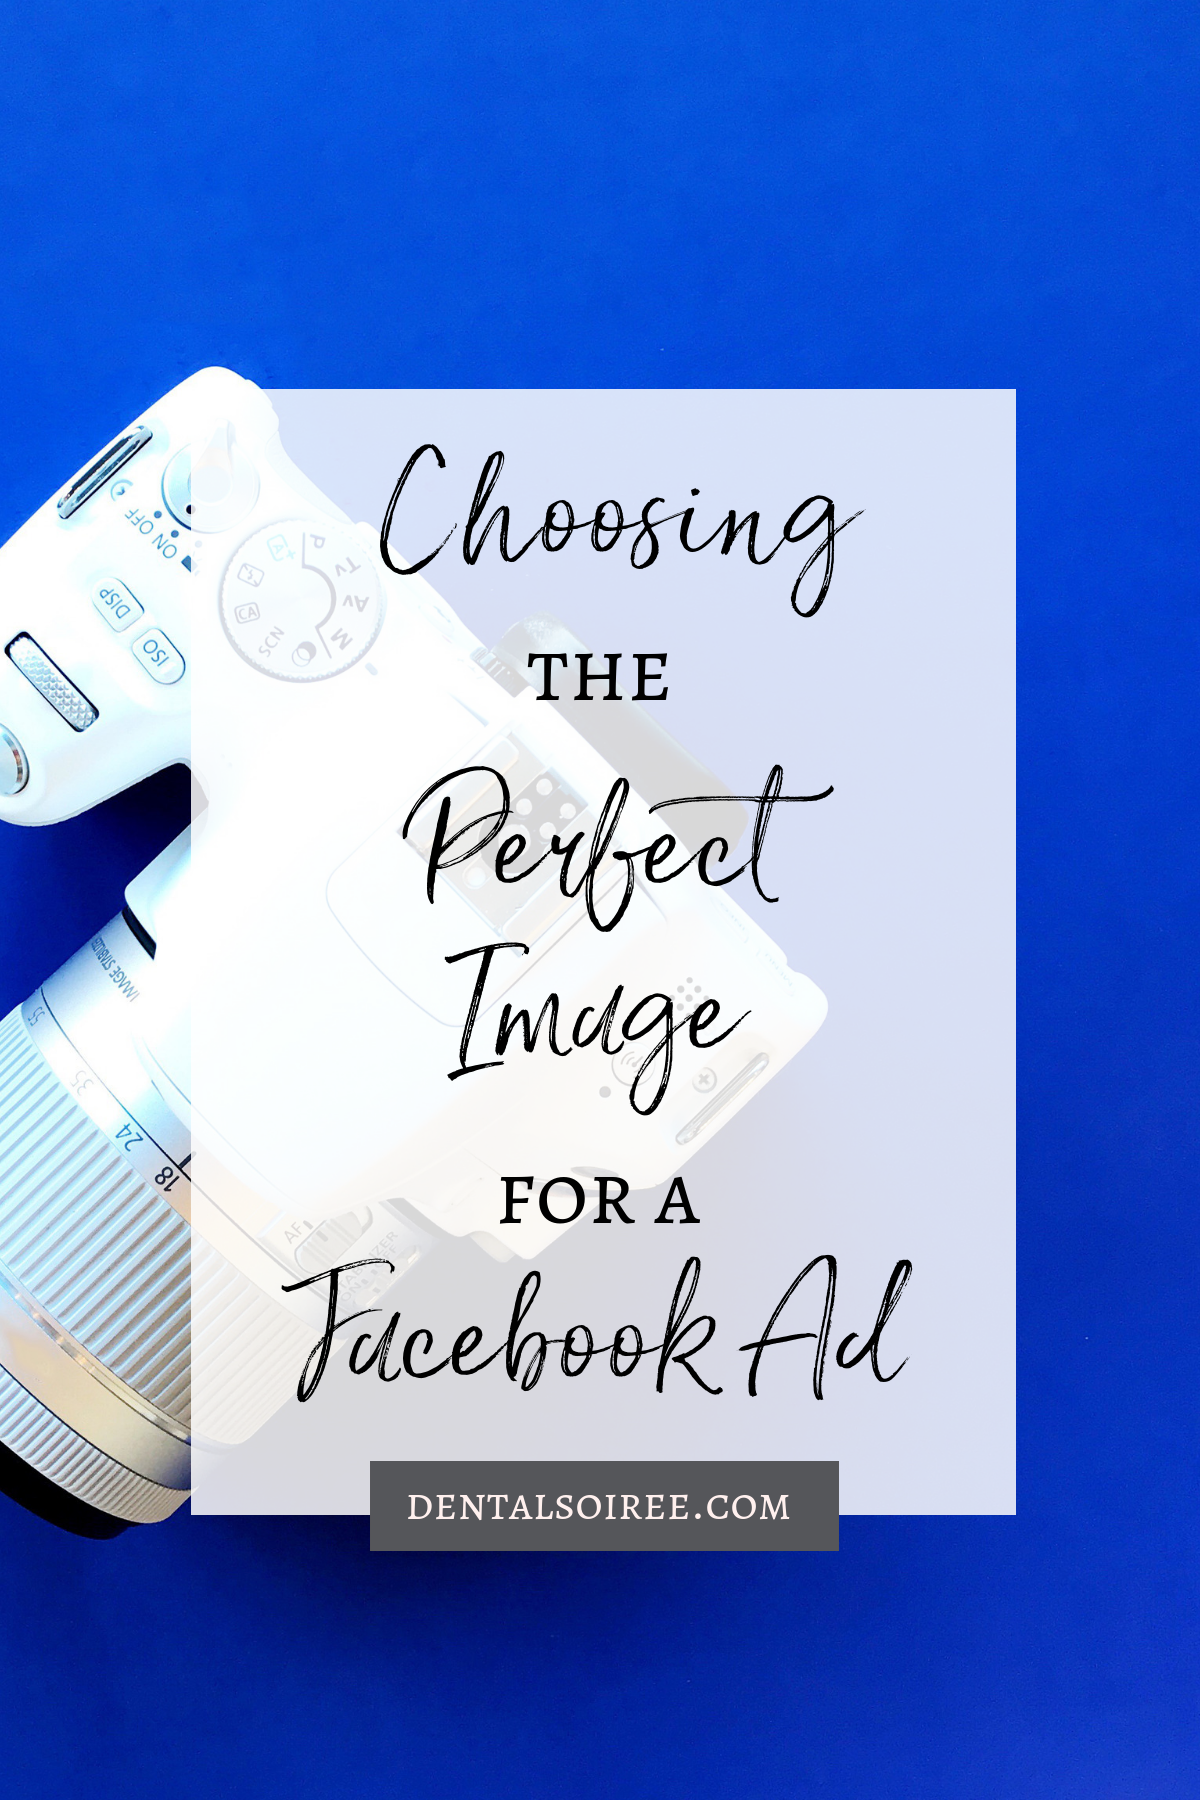 Choosing the Perfect Image for a Facebook Ad